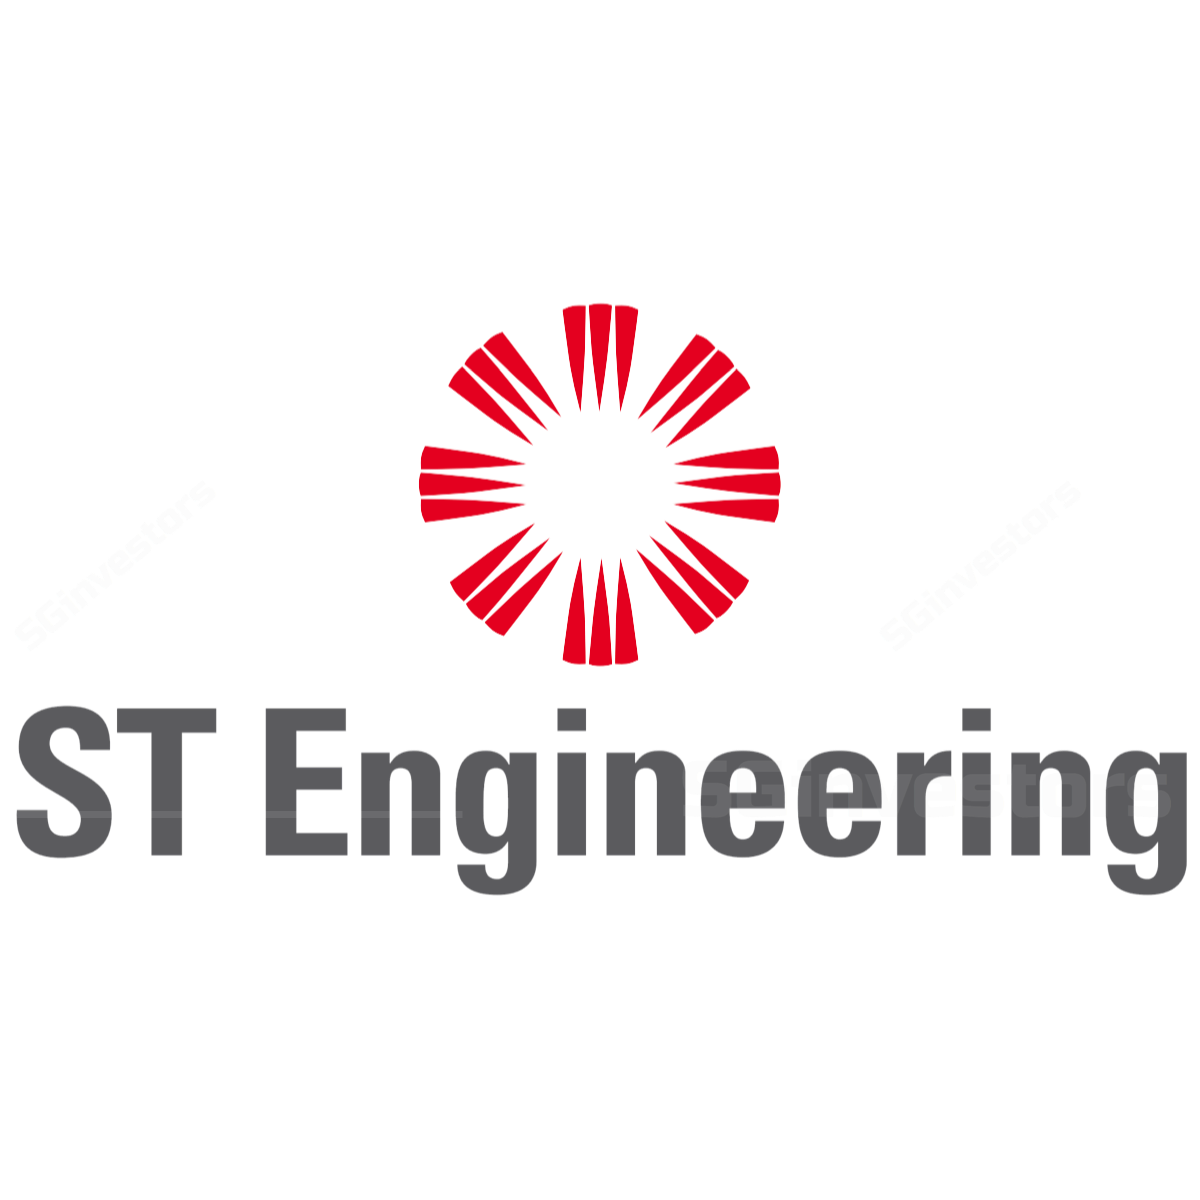 ST Engineering (STE SP) - UOB Kay Hian 2017-02-17: 4Q16 Full Year Core Earnings Flat, But STE Deserves To Be Re-Rated As A New-economy Firm